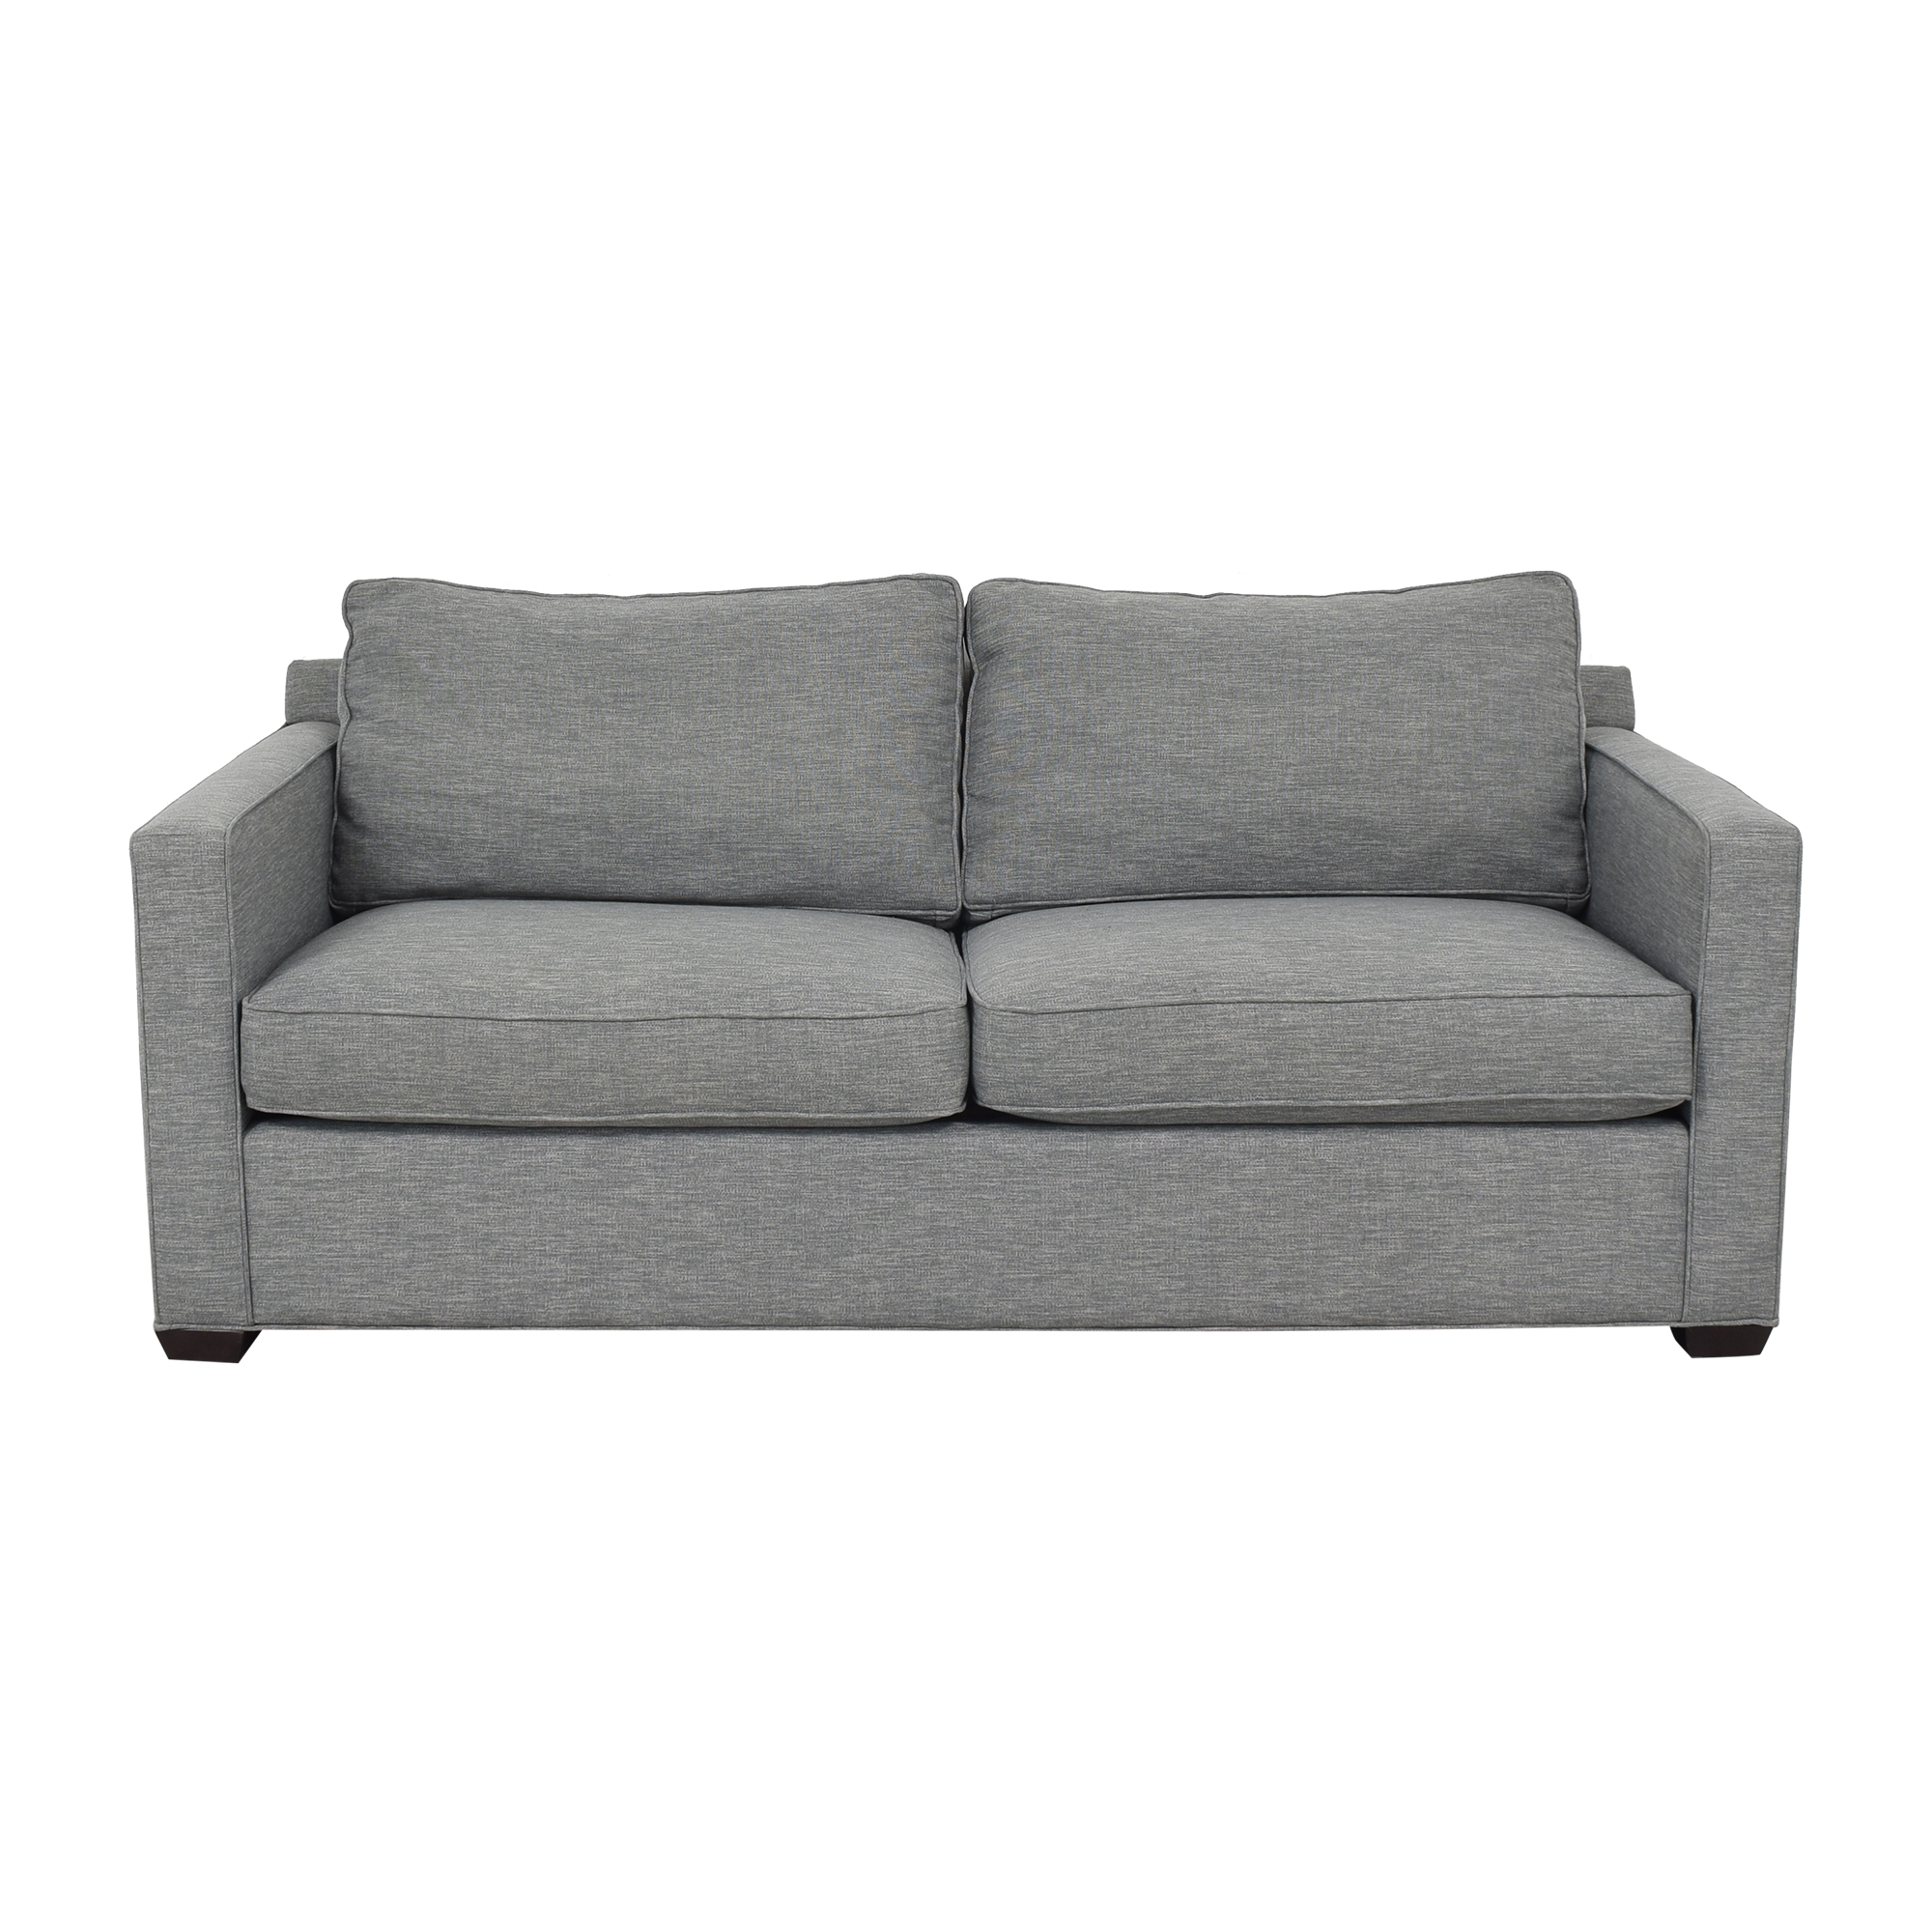 Crate & Barrel Davis Sofa / Sofas